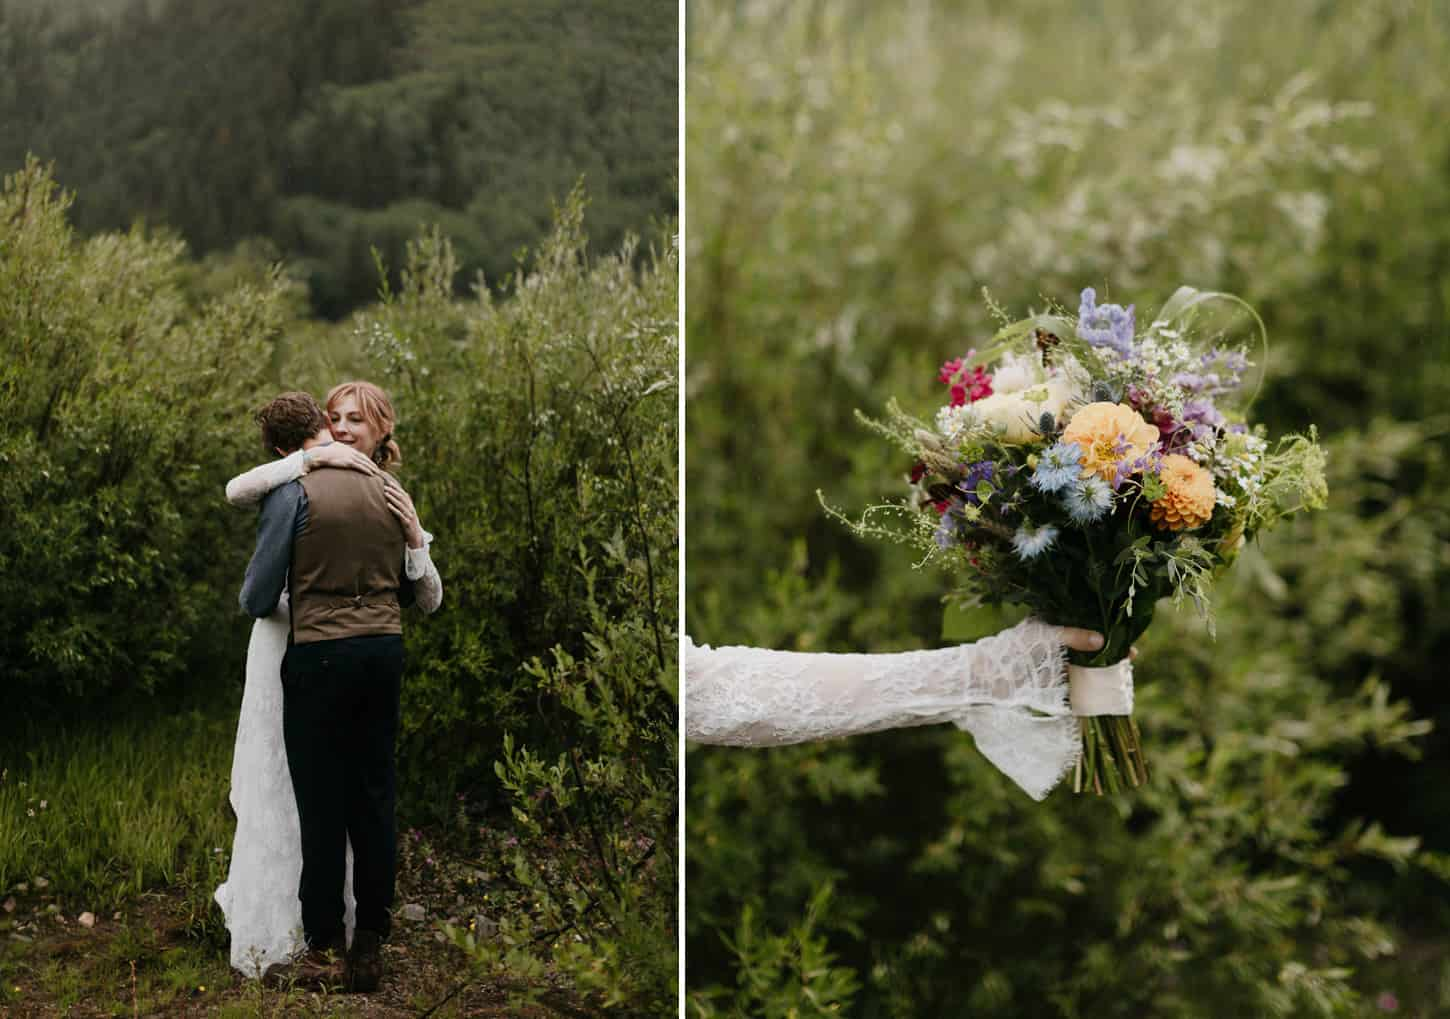 bridal bouquet full of wildflowers and natural colors